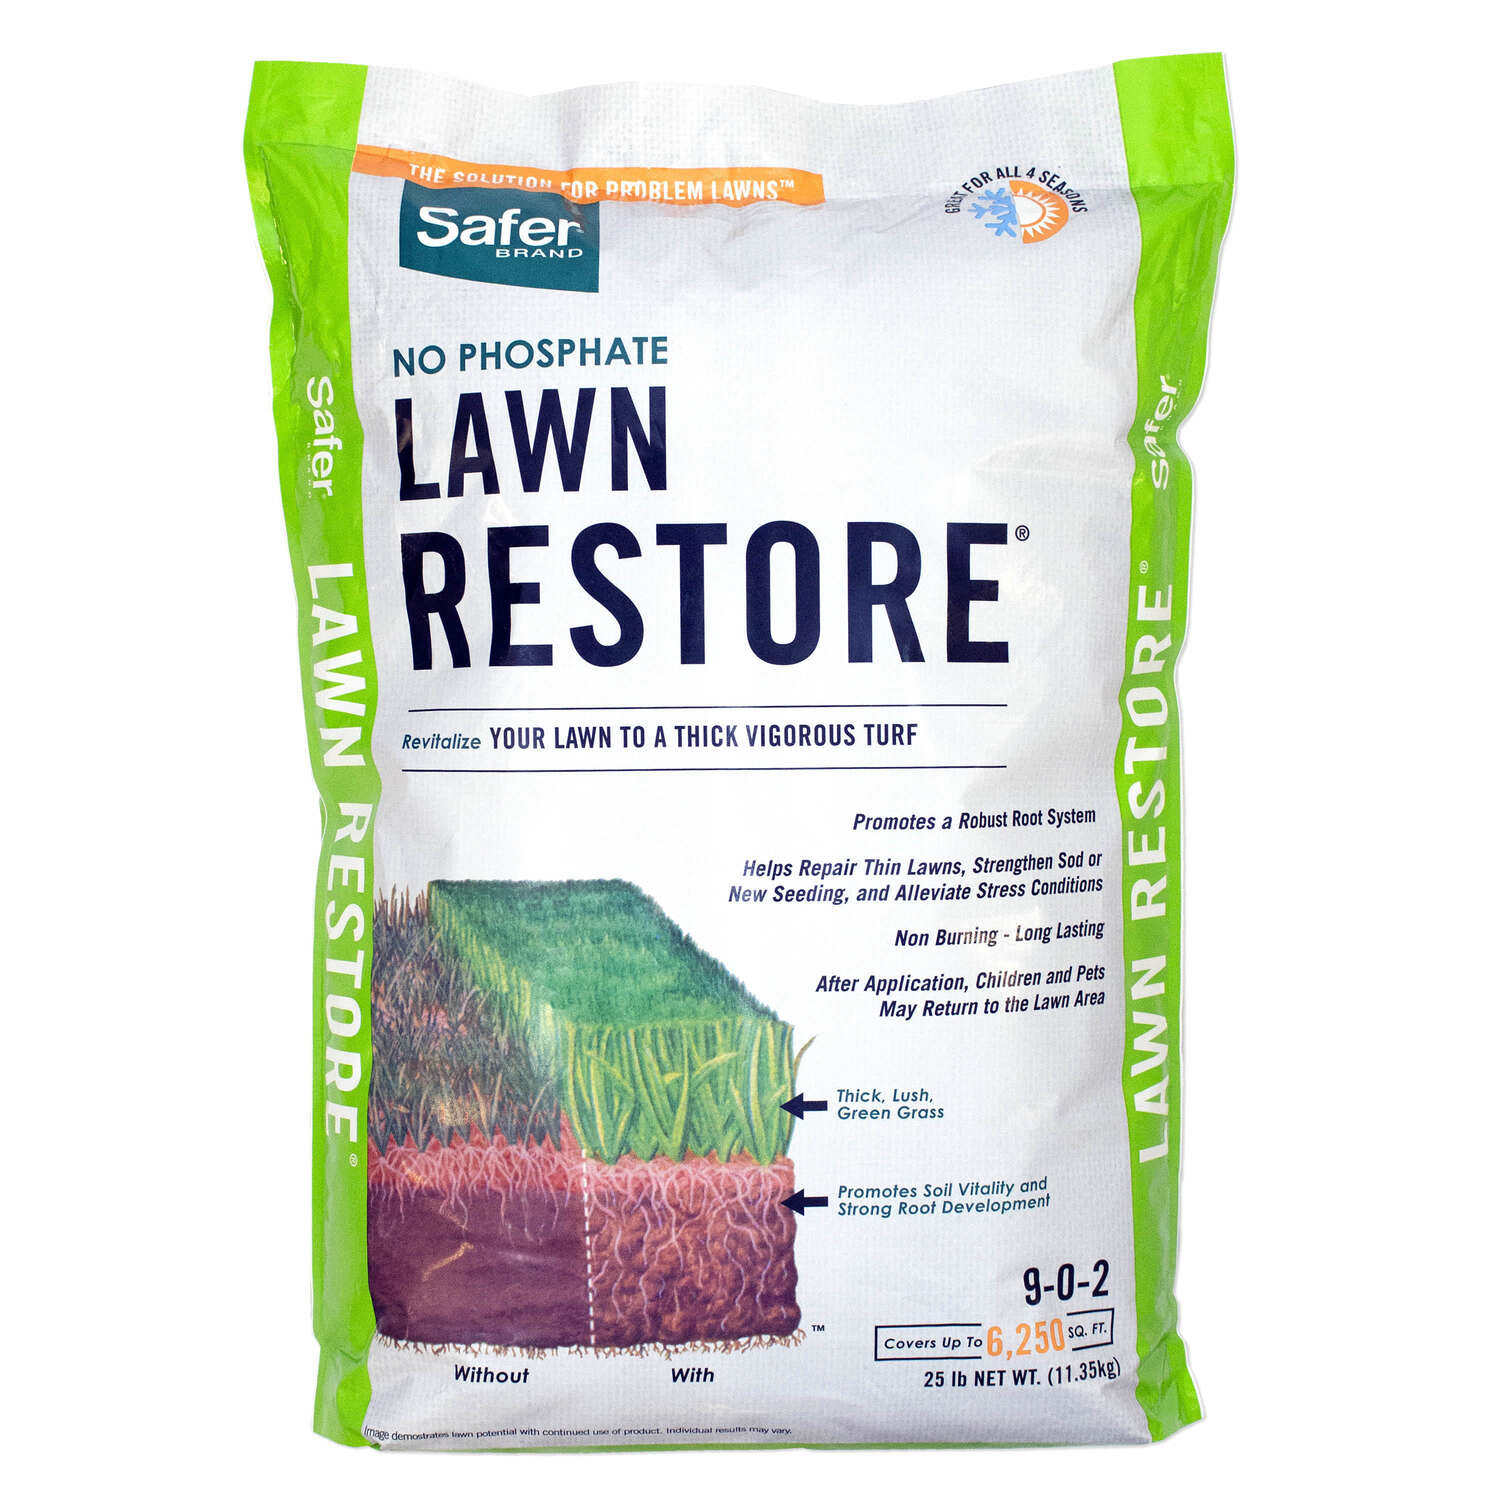 Safer Brand Lawn Restore All-Purpose 9-0-2 Lawn Fertilizer 6250 sq. ft. For All Grasses